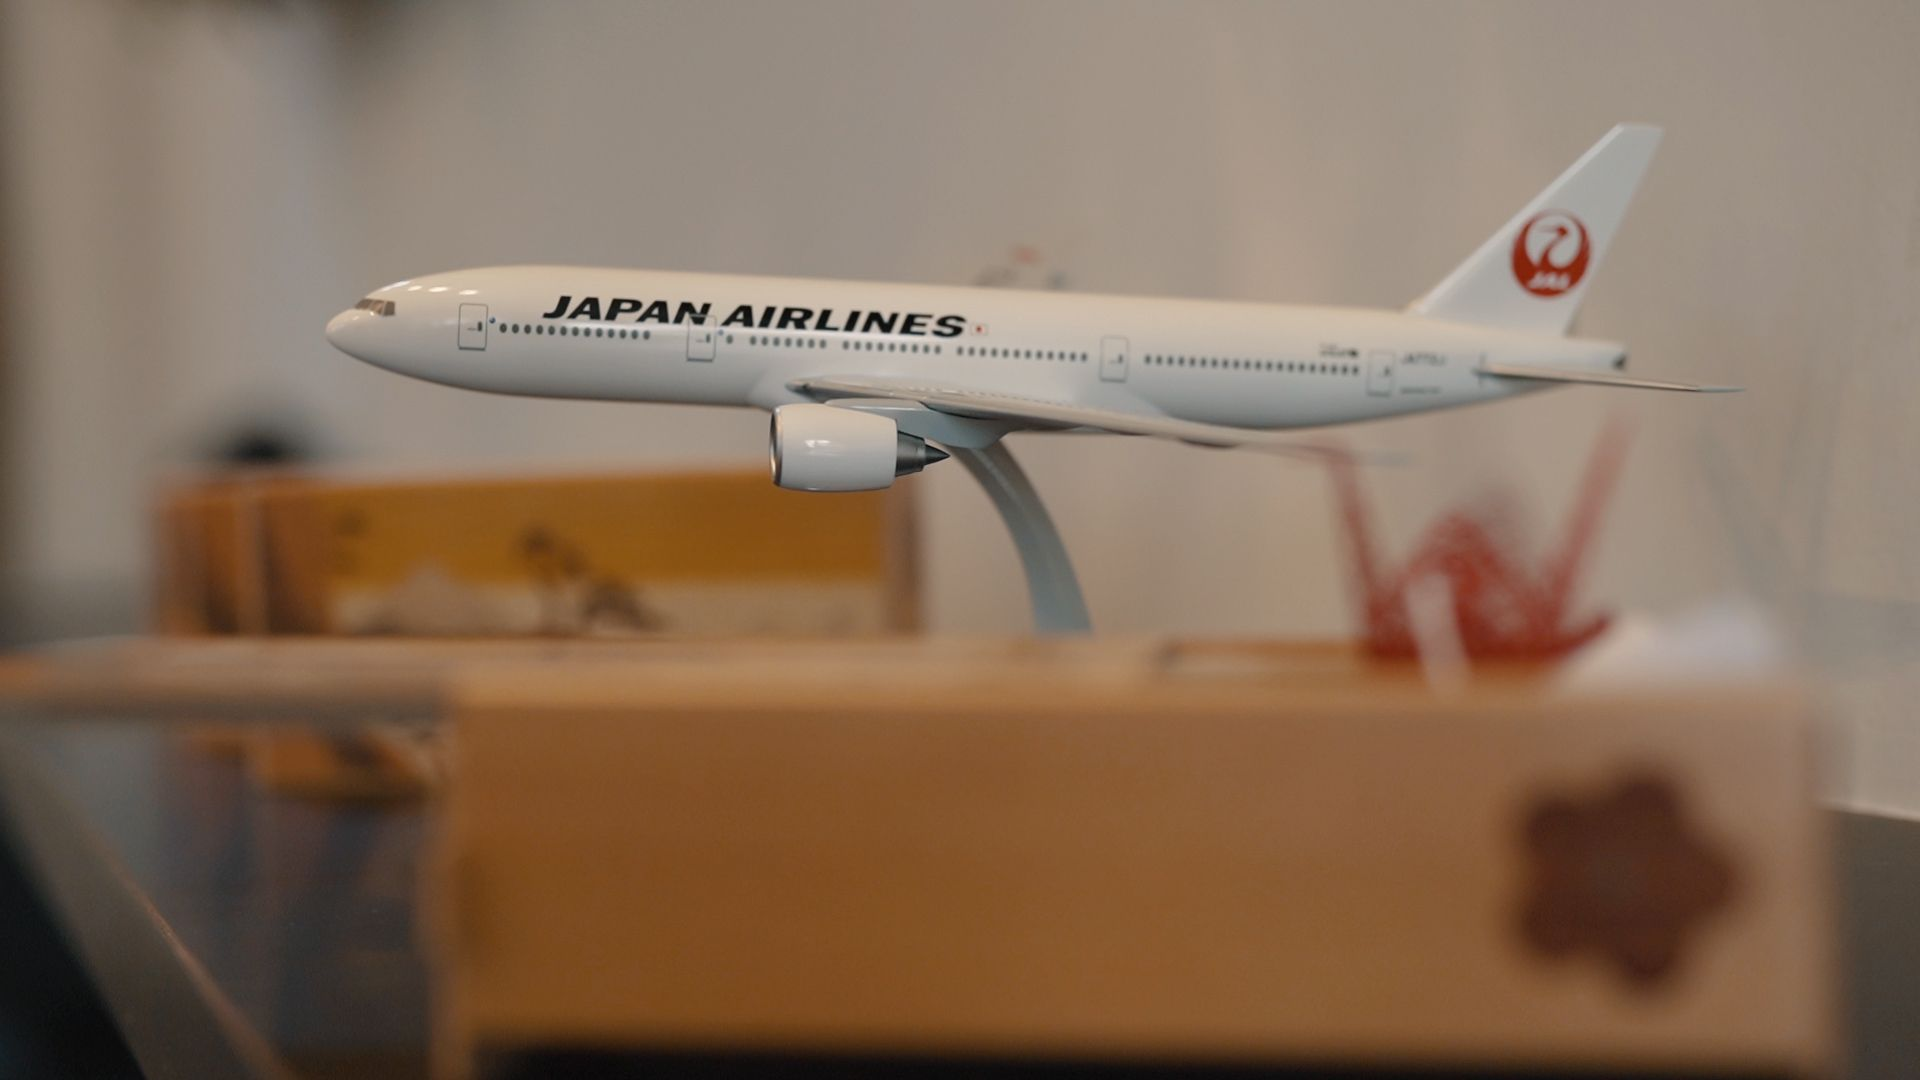 Japan Airlines Took Travellers on a Journey of Ikigai